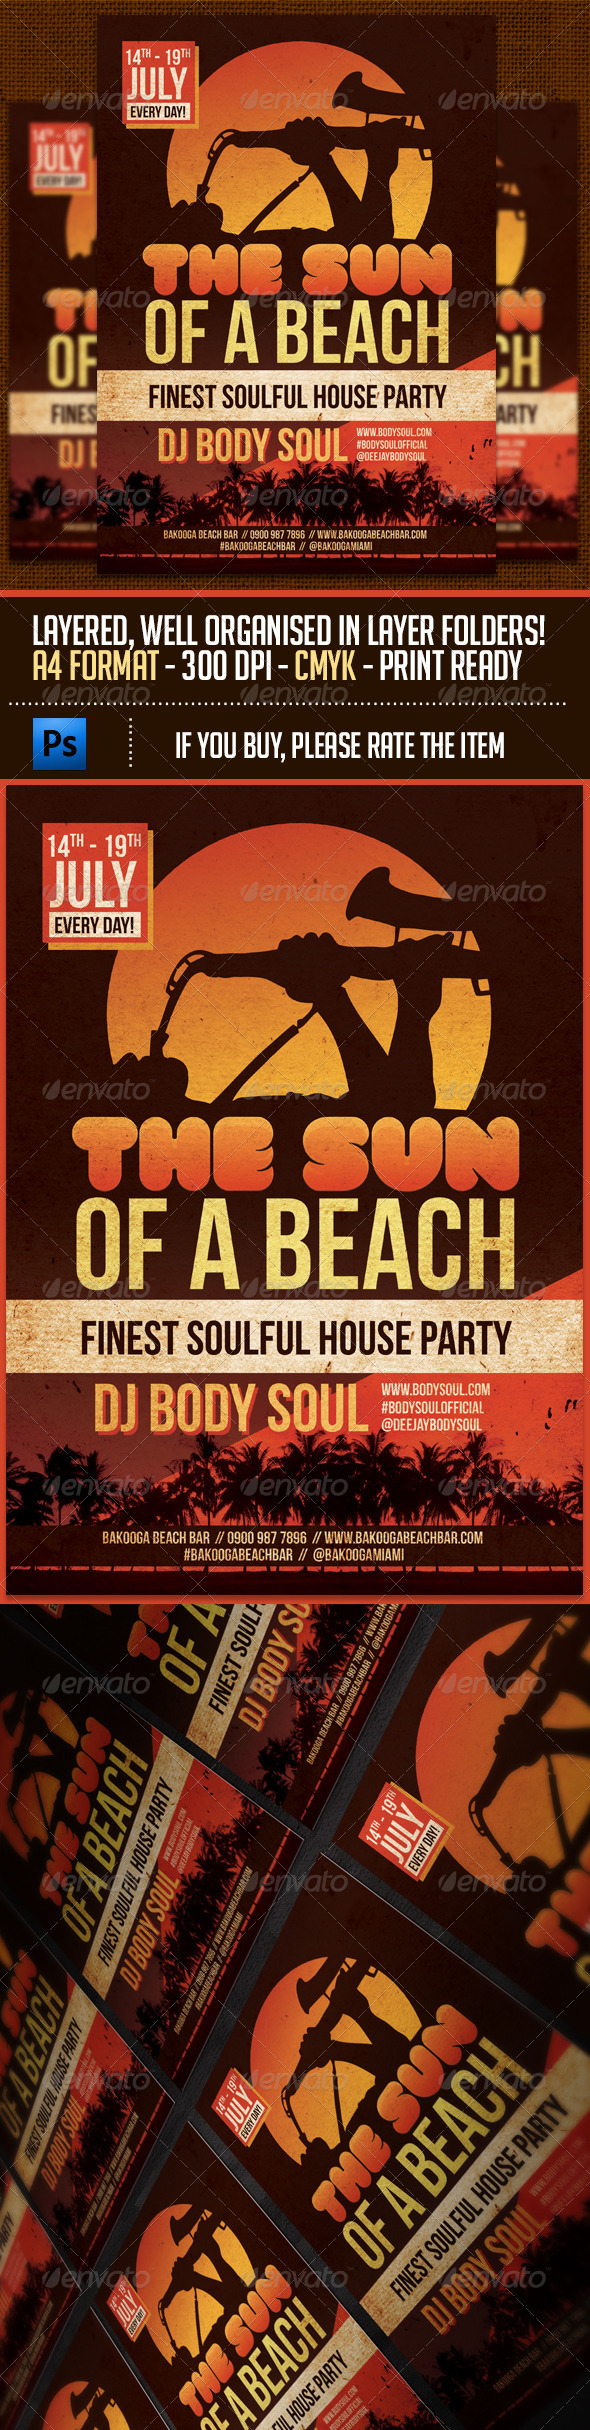 The Sun Of A Beach Party Flyer Template - Clubs & Parties Events